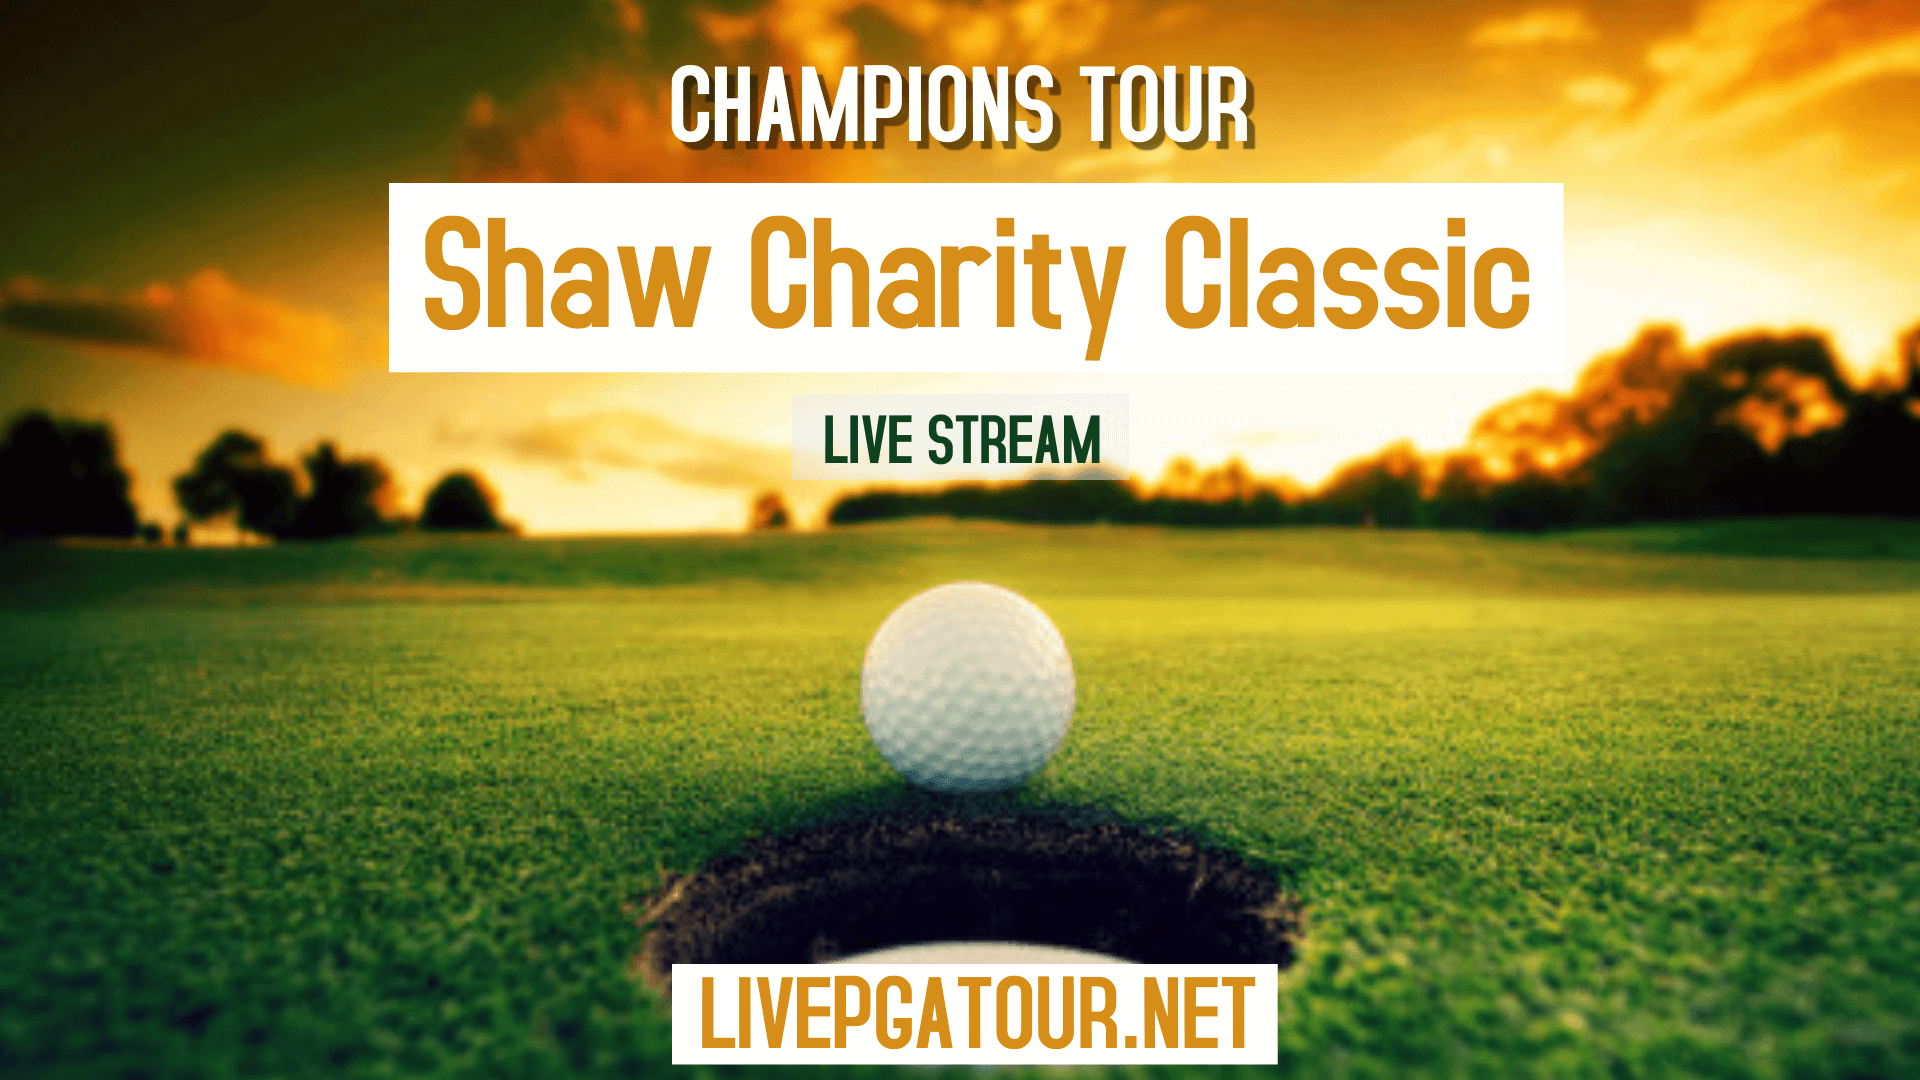 Shaw Charity Classic Live Stream 2021: Champions Tour Day 1